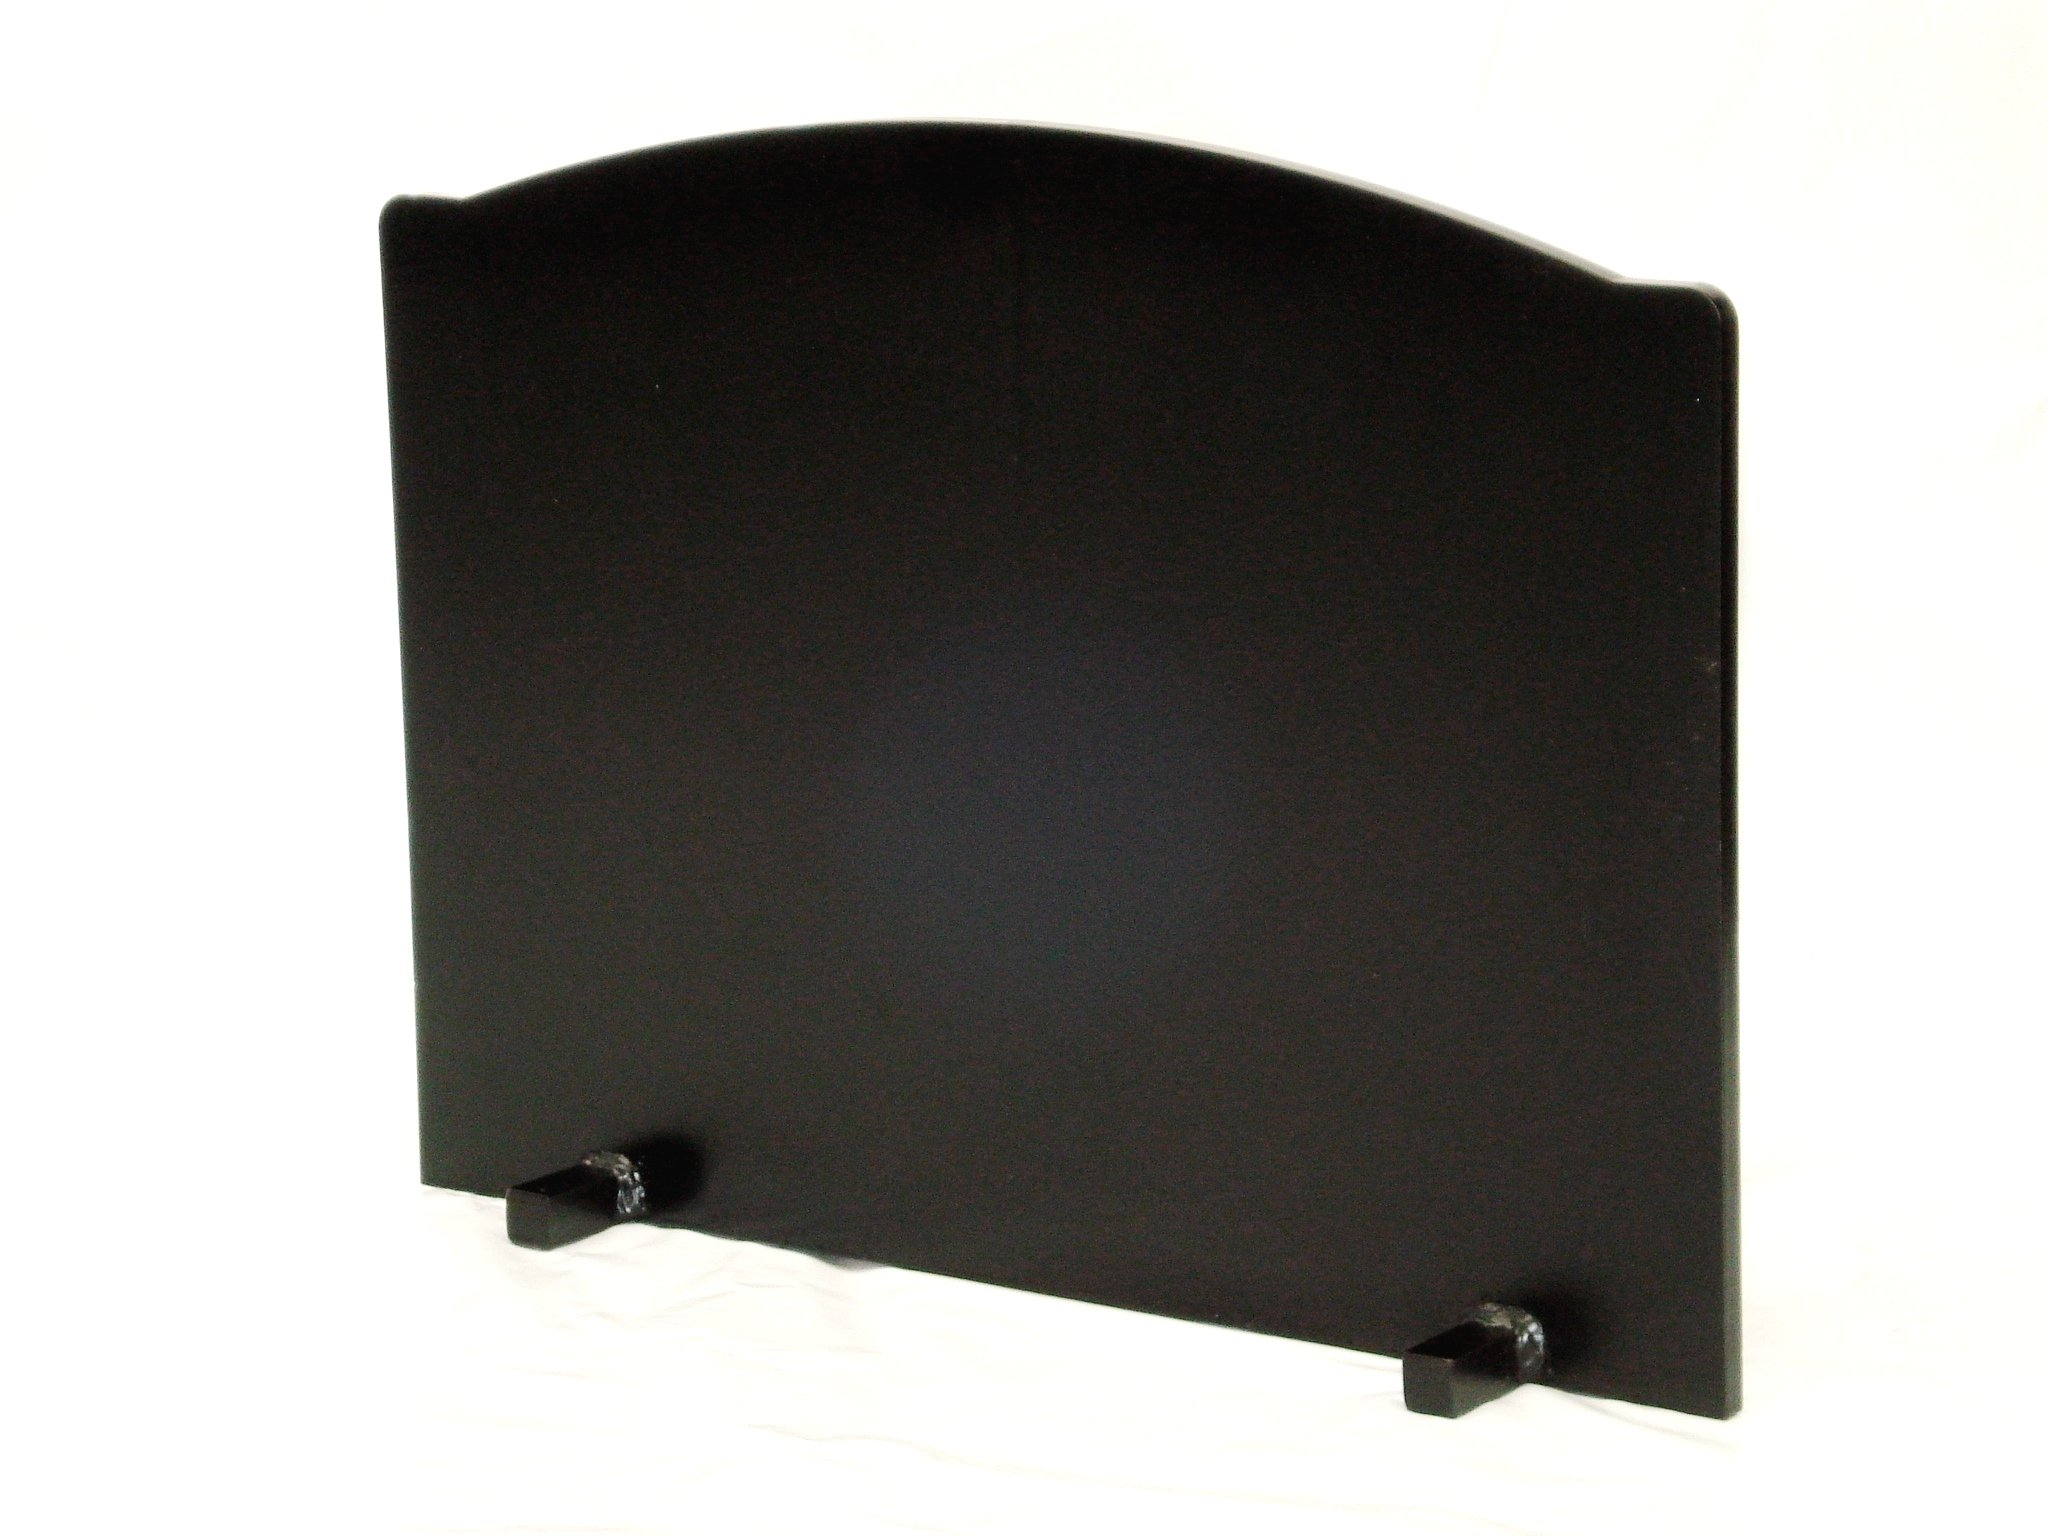 Grate Wall of Fire Model RF-5 Reflective Fireback 21'' Wide, 15 1/2'' Tall. by Grate Wall of Fire